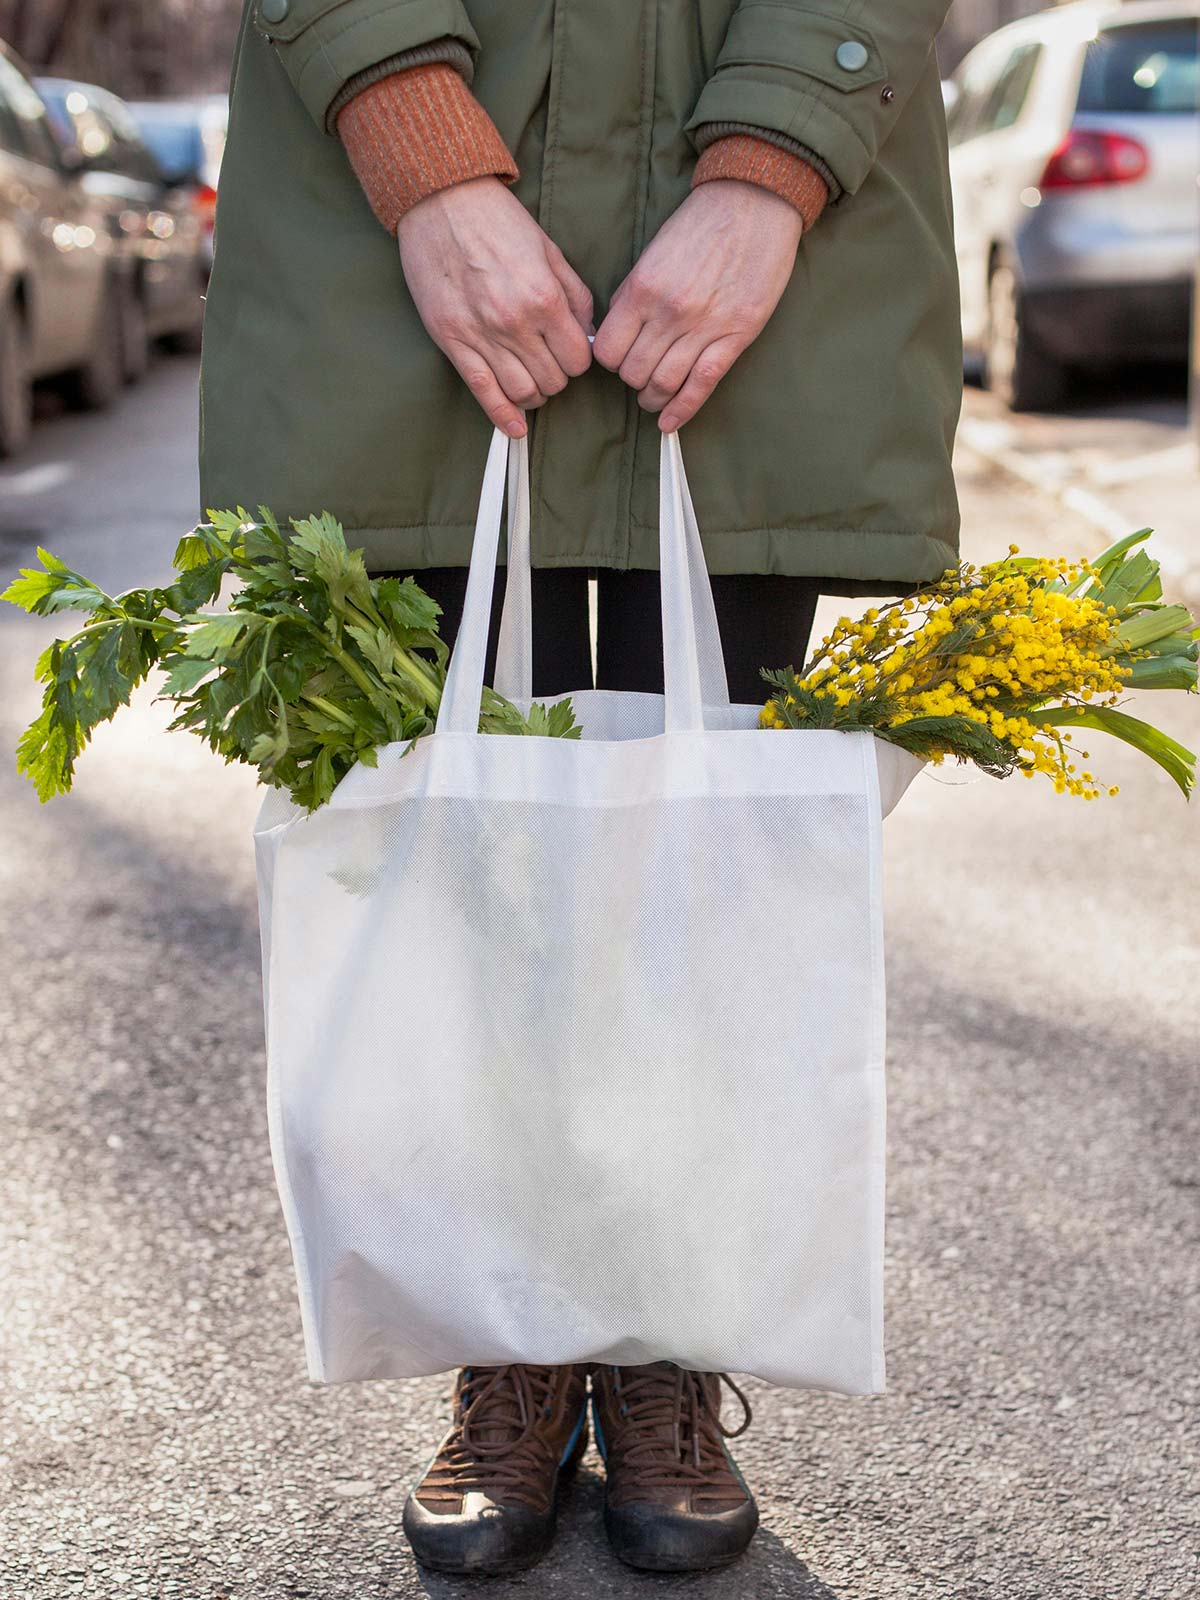 A woman standing in the street with focus on a bag of vegetables and flowers